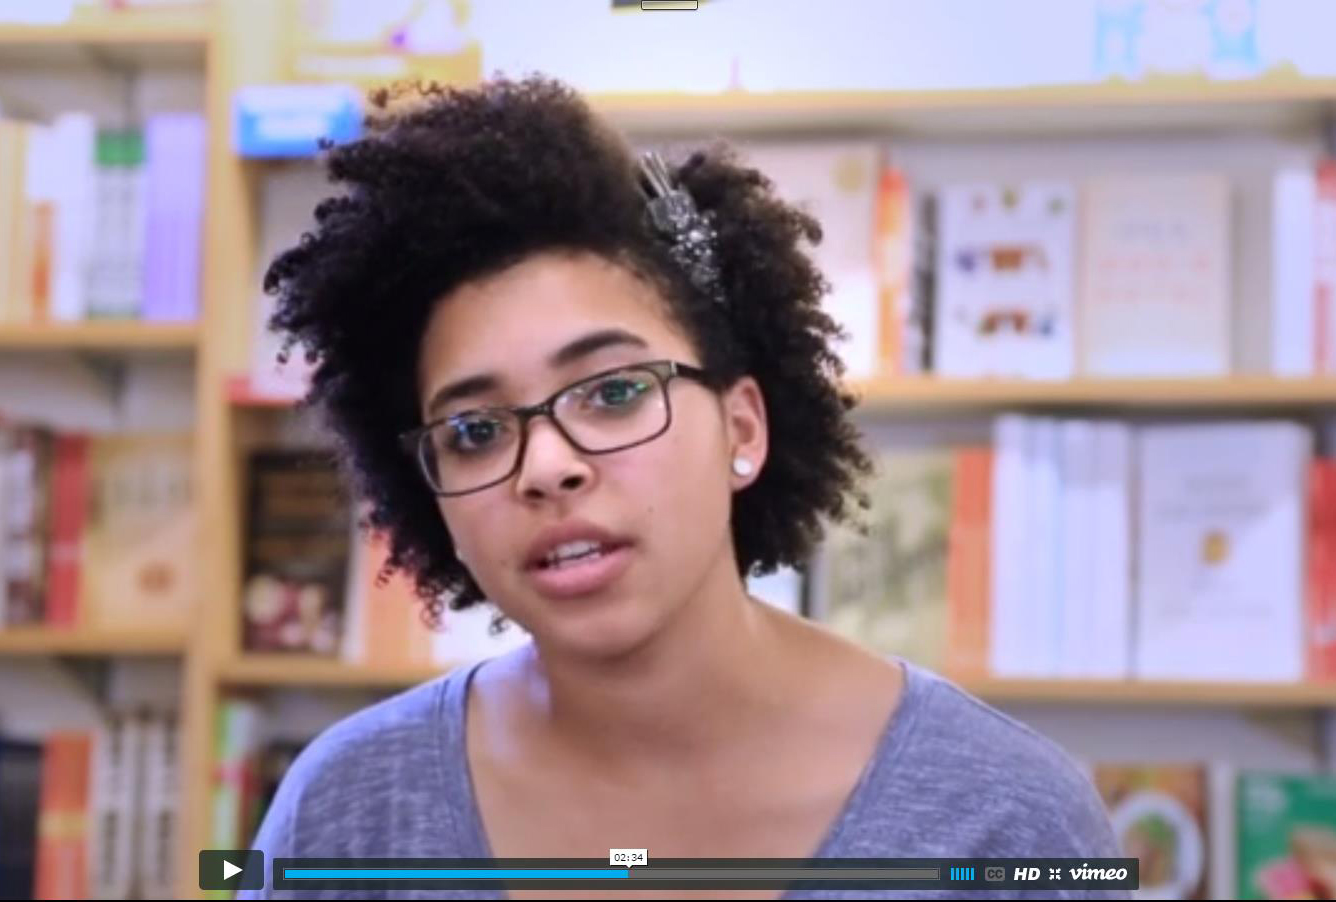 Saige Hawthorne, drama and sociology major, discusses student resources in this U101 orientation video.